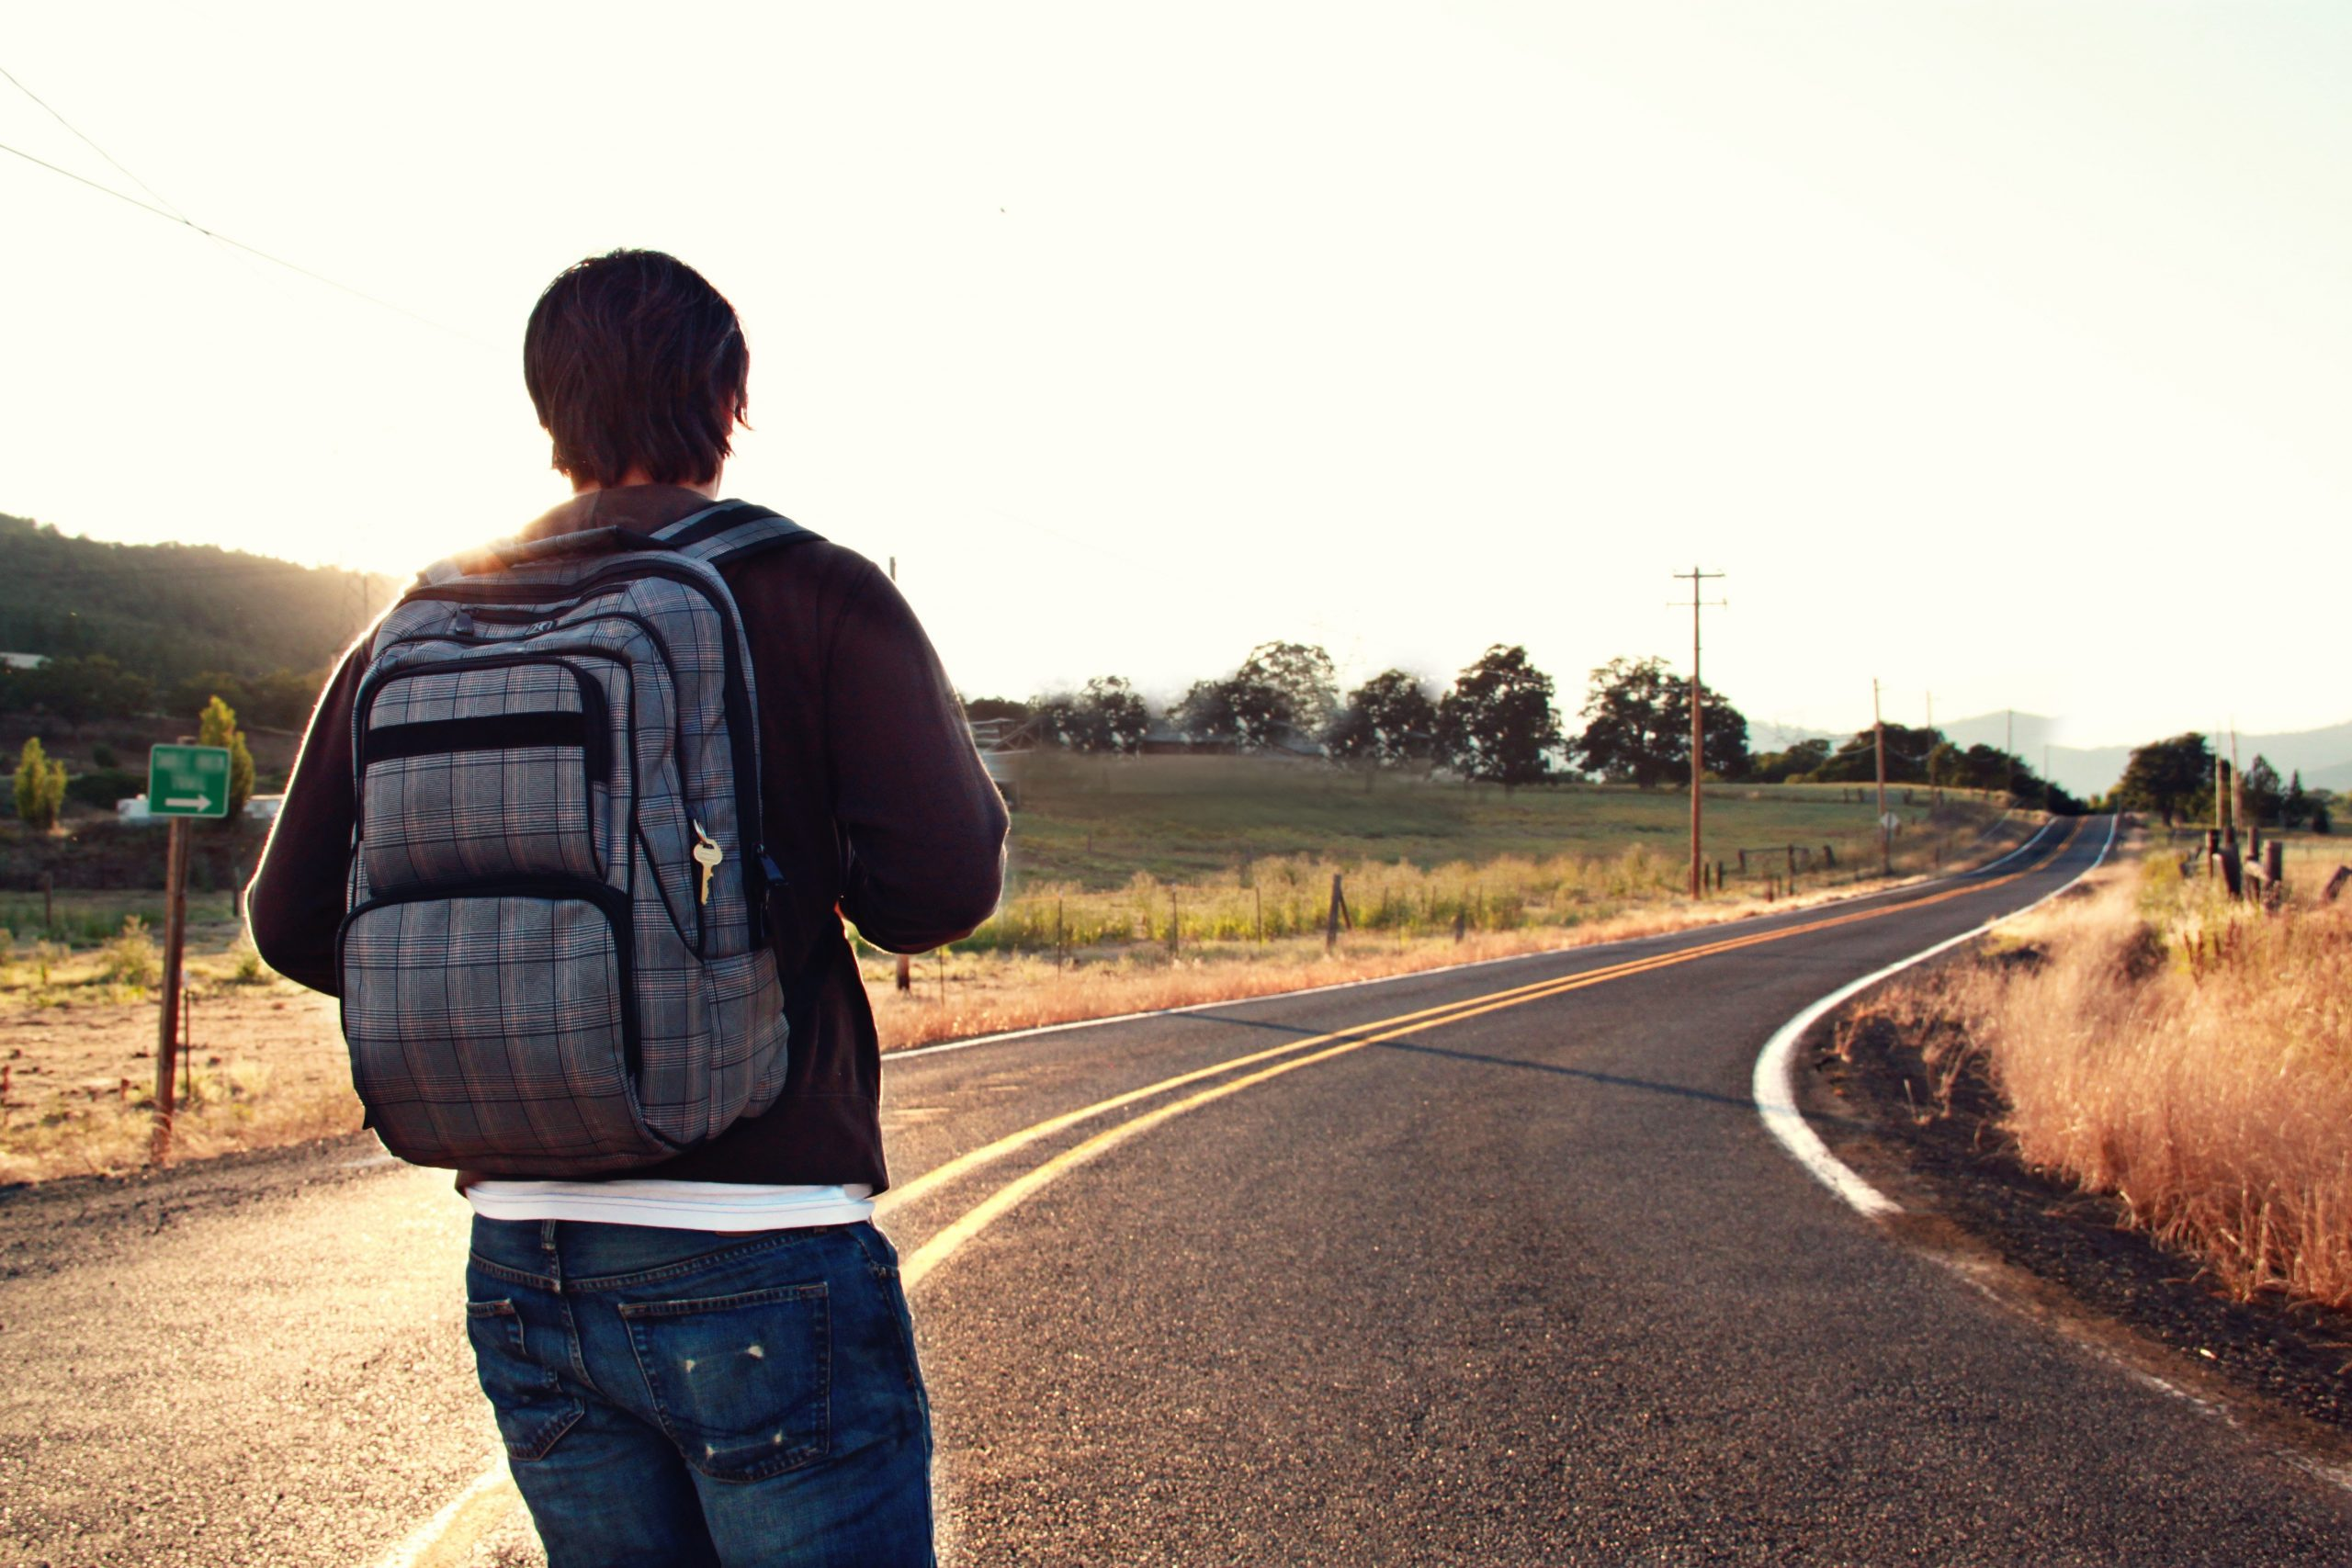 man embarking on journey by himself